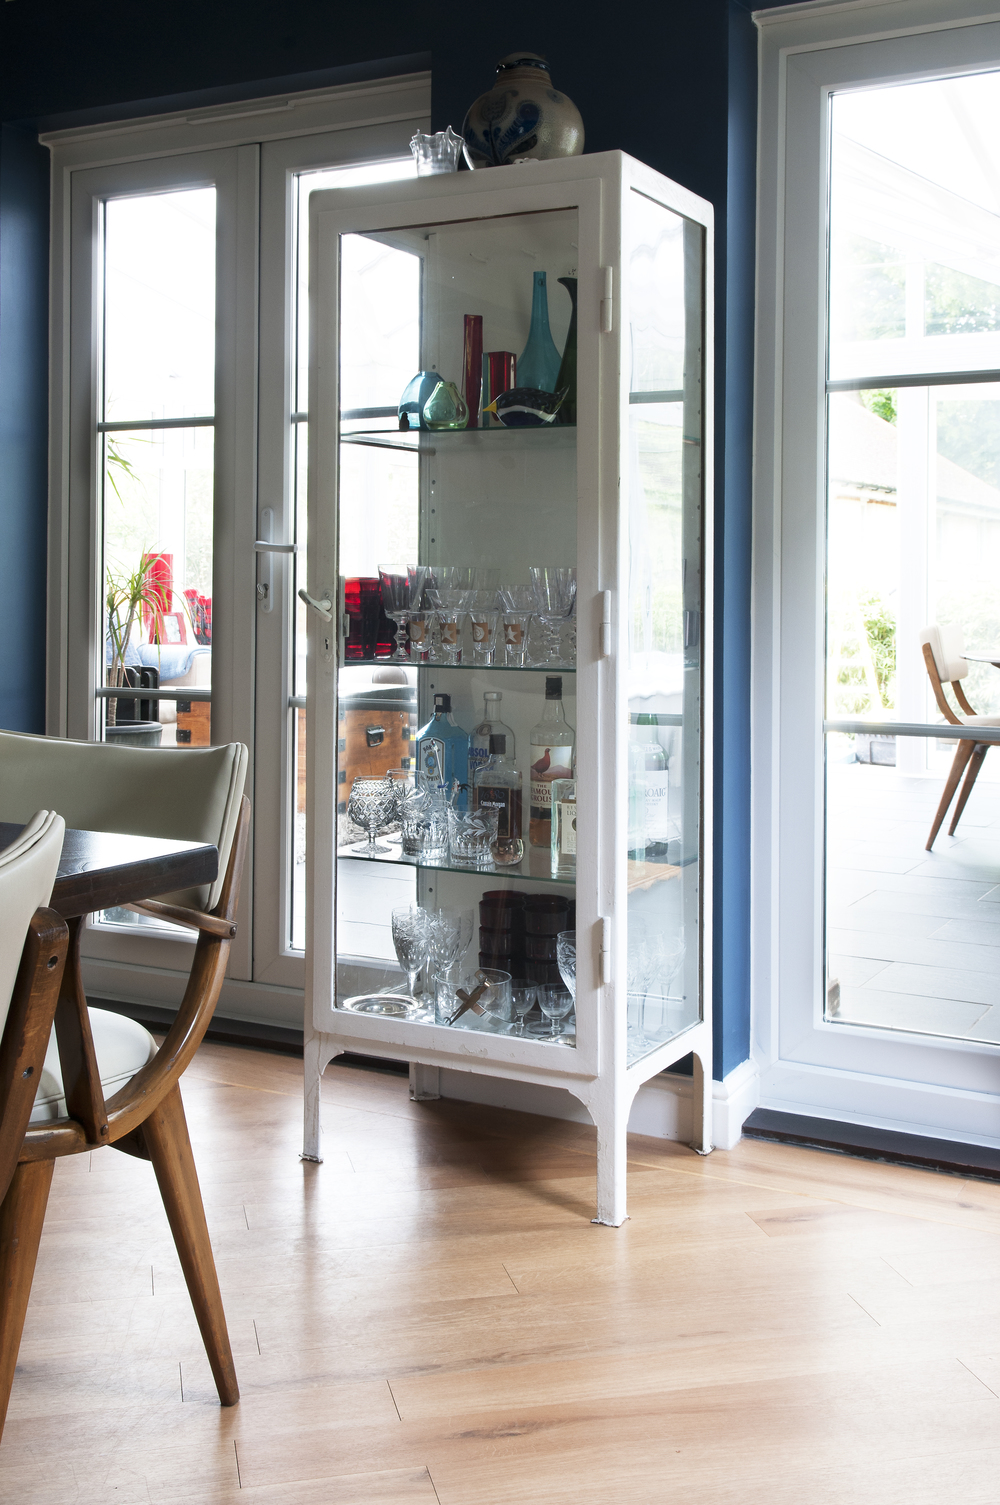 Tunbridge Wells Dining Room Design by Smartstyle Interiors - Pharmacy Drinks Cabinet.jpg